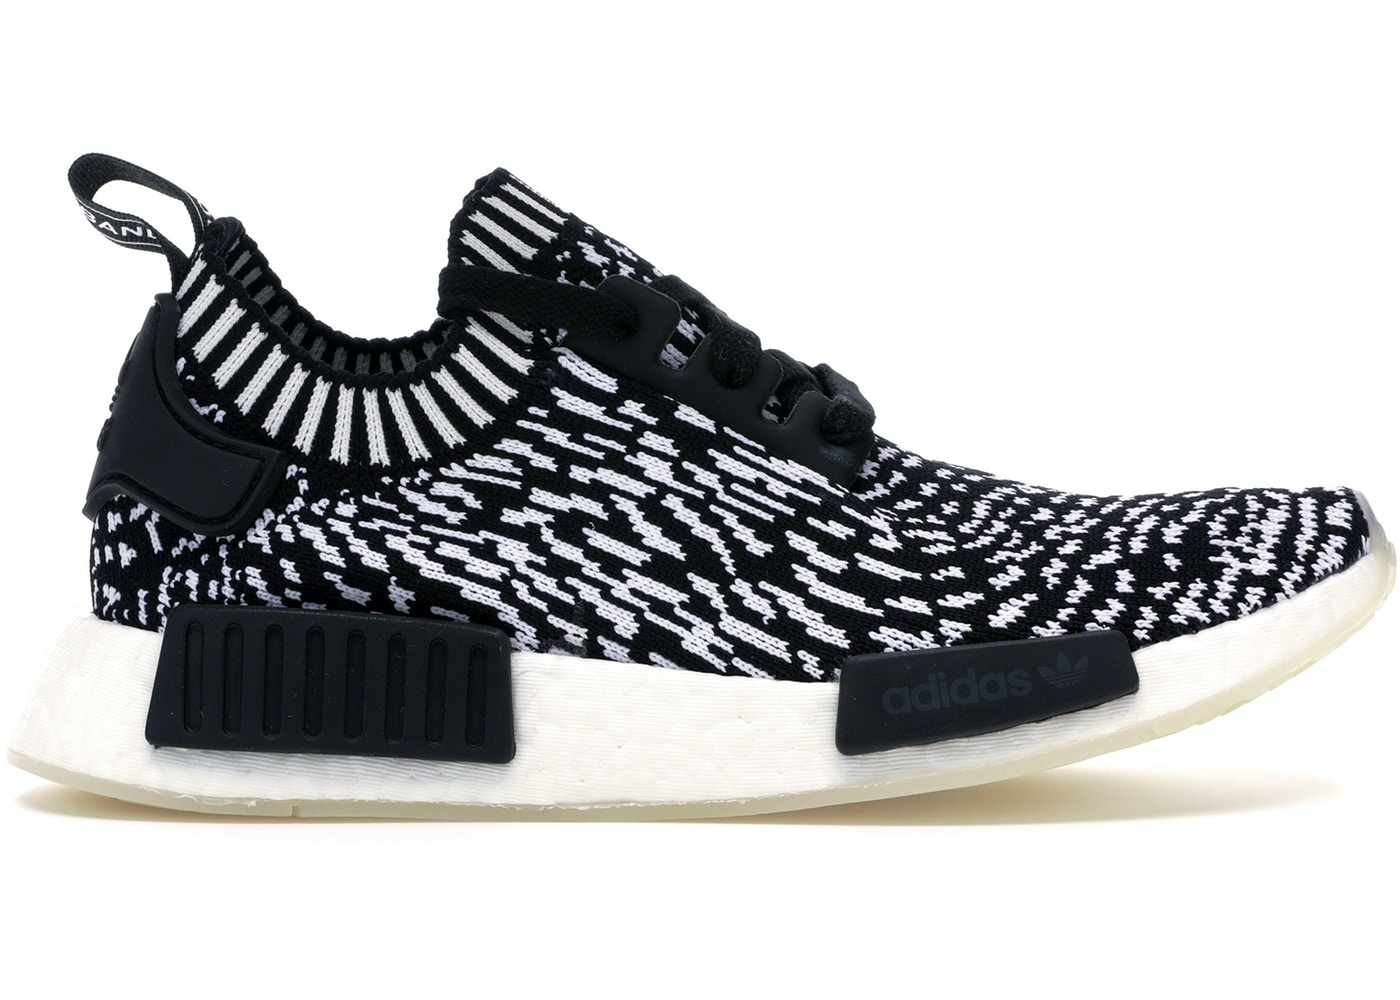 low priced 40d85 4609b adidas NMD R1 Sashiko Black